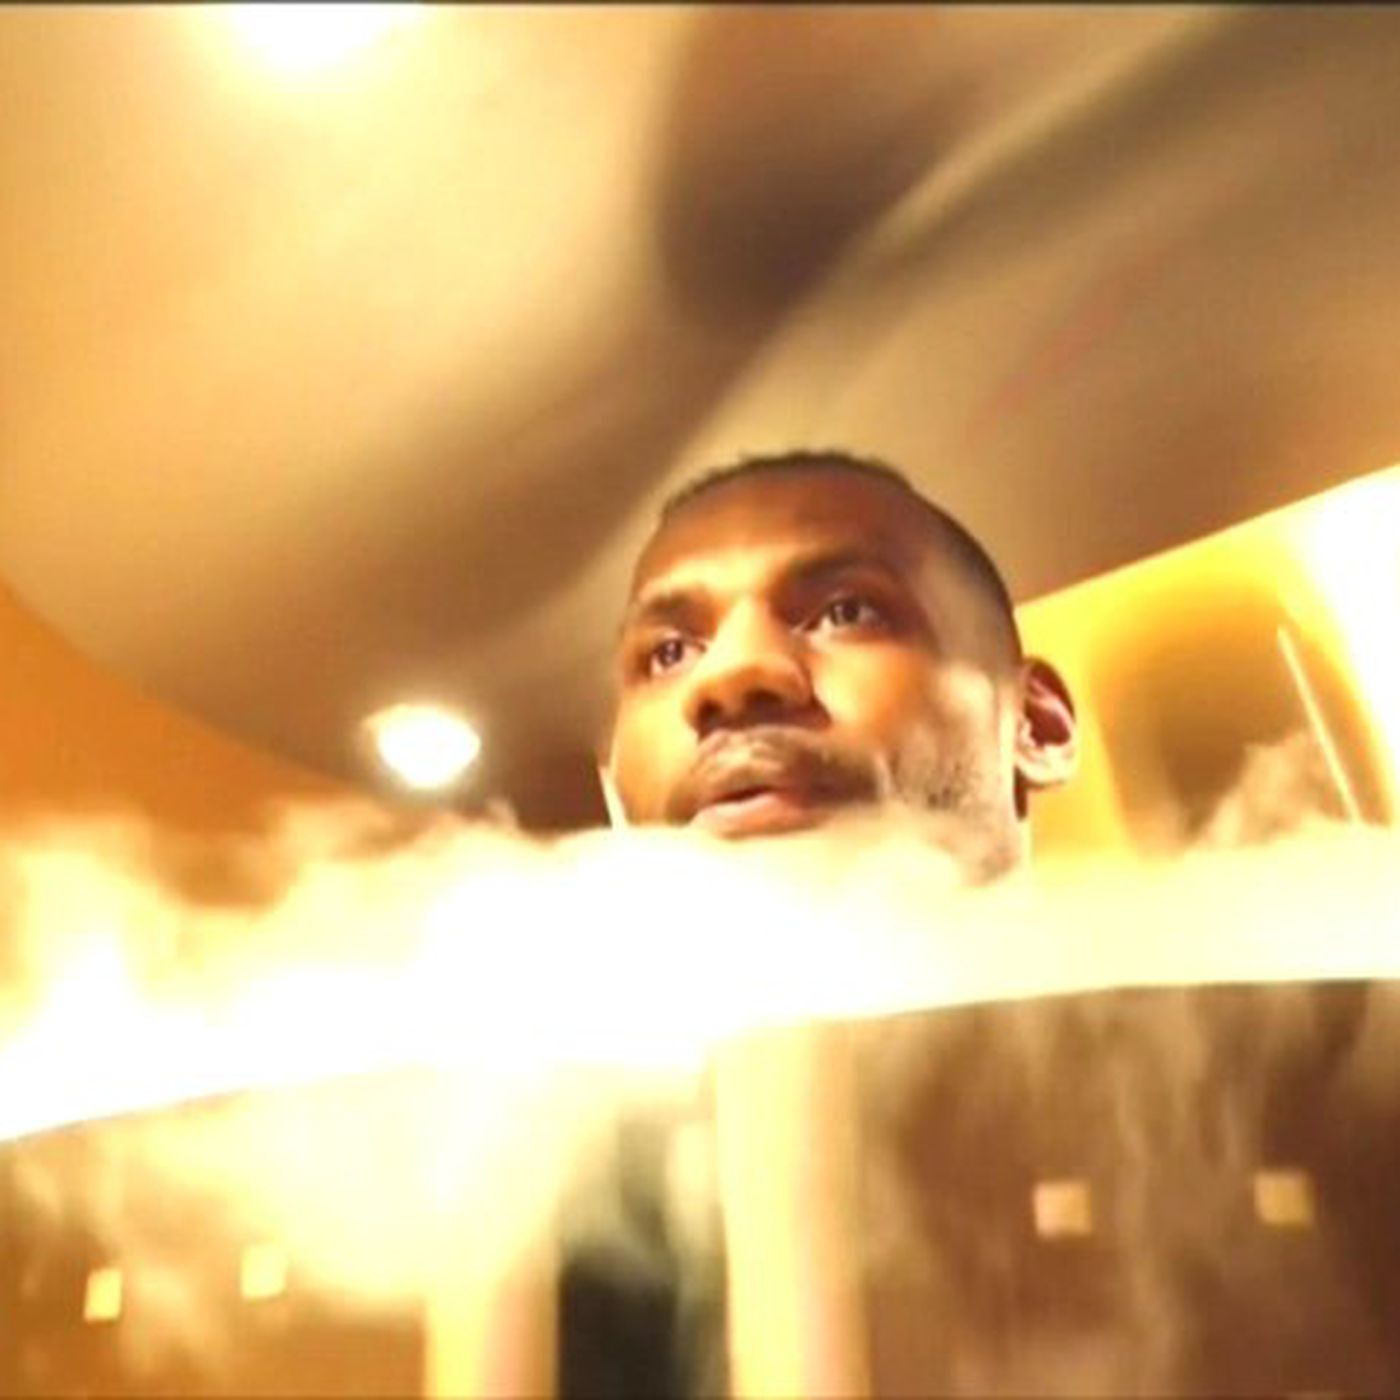 This is the liquid nitrogen chamber that LeBron James used